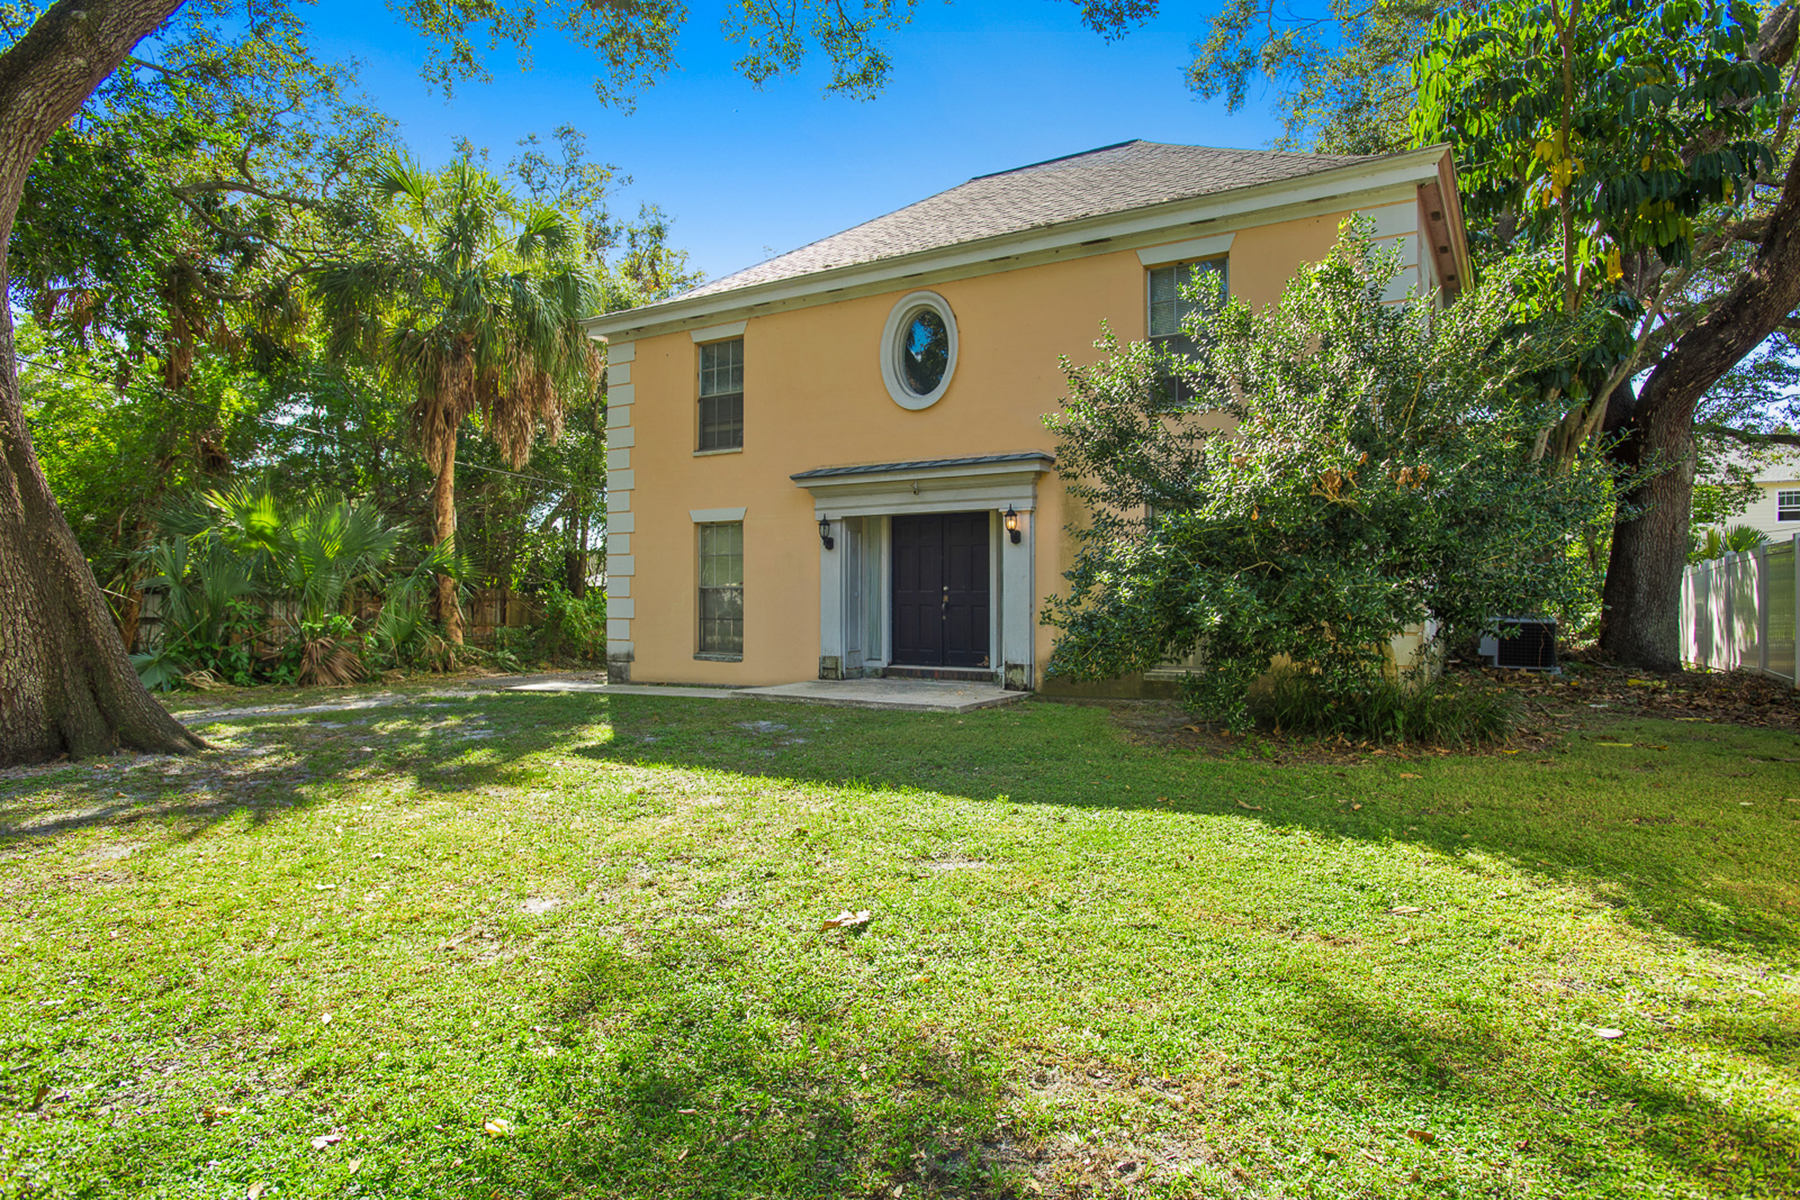 Single Family Home for Sale at SOUTH TAMPA 3015 S Schiller St, Tampa, Florida, 33629 United States